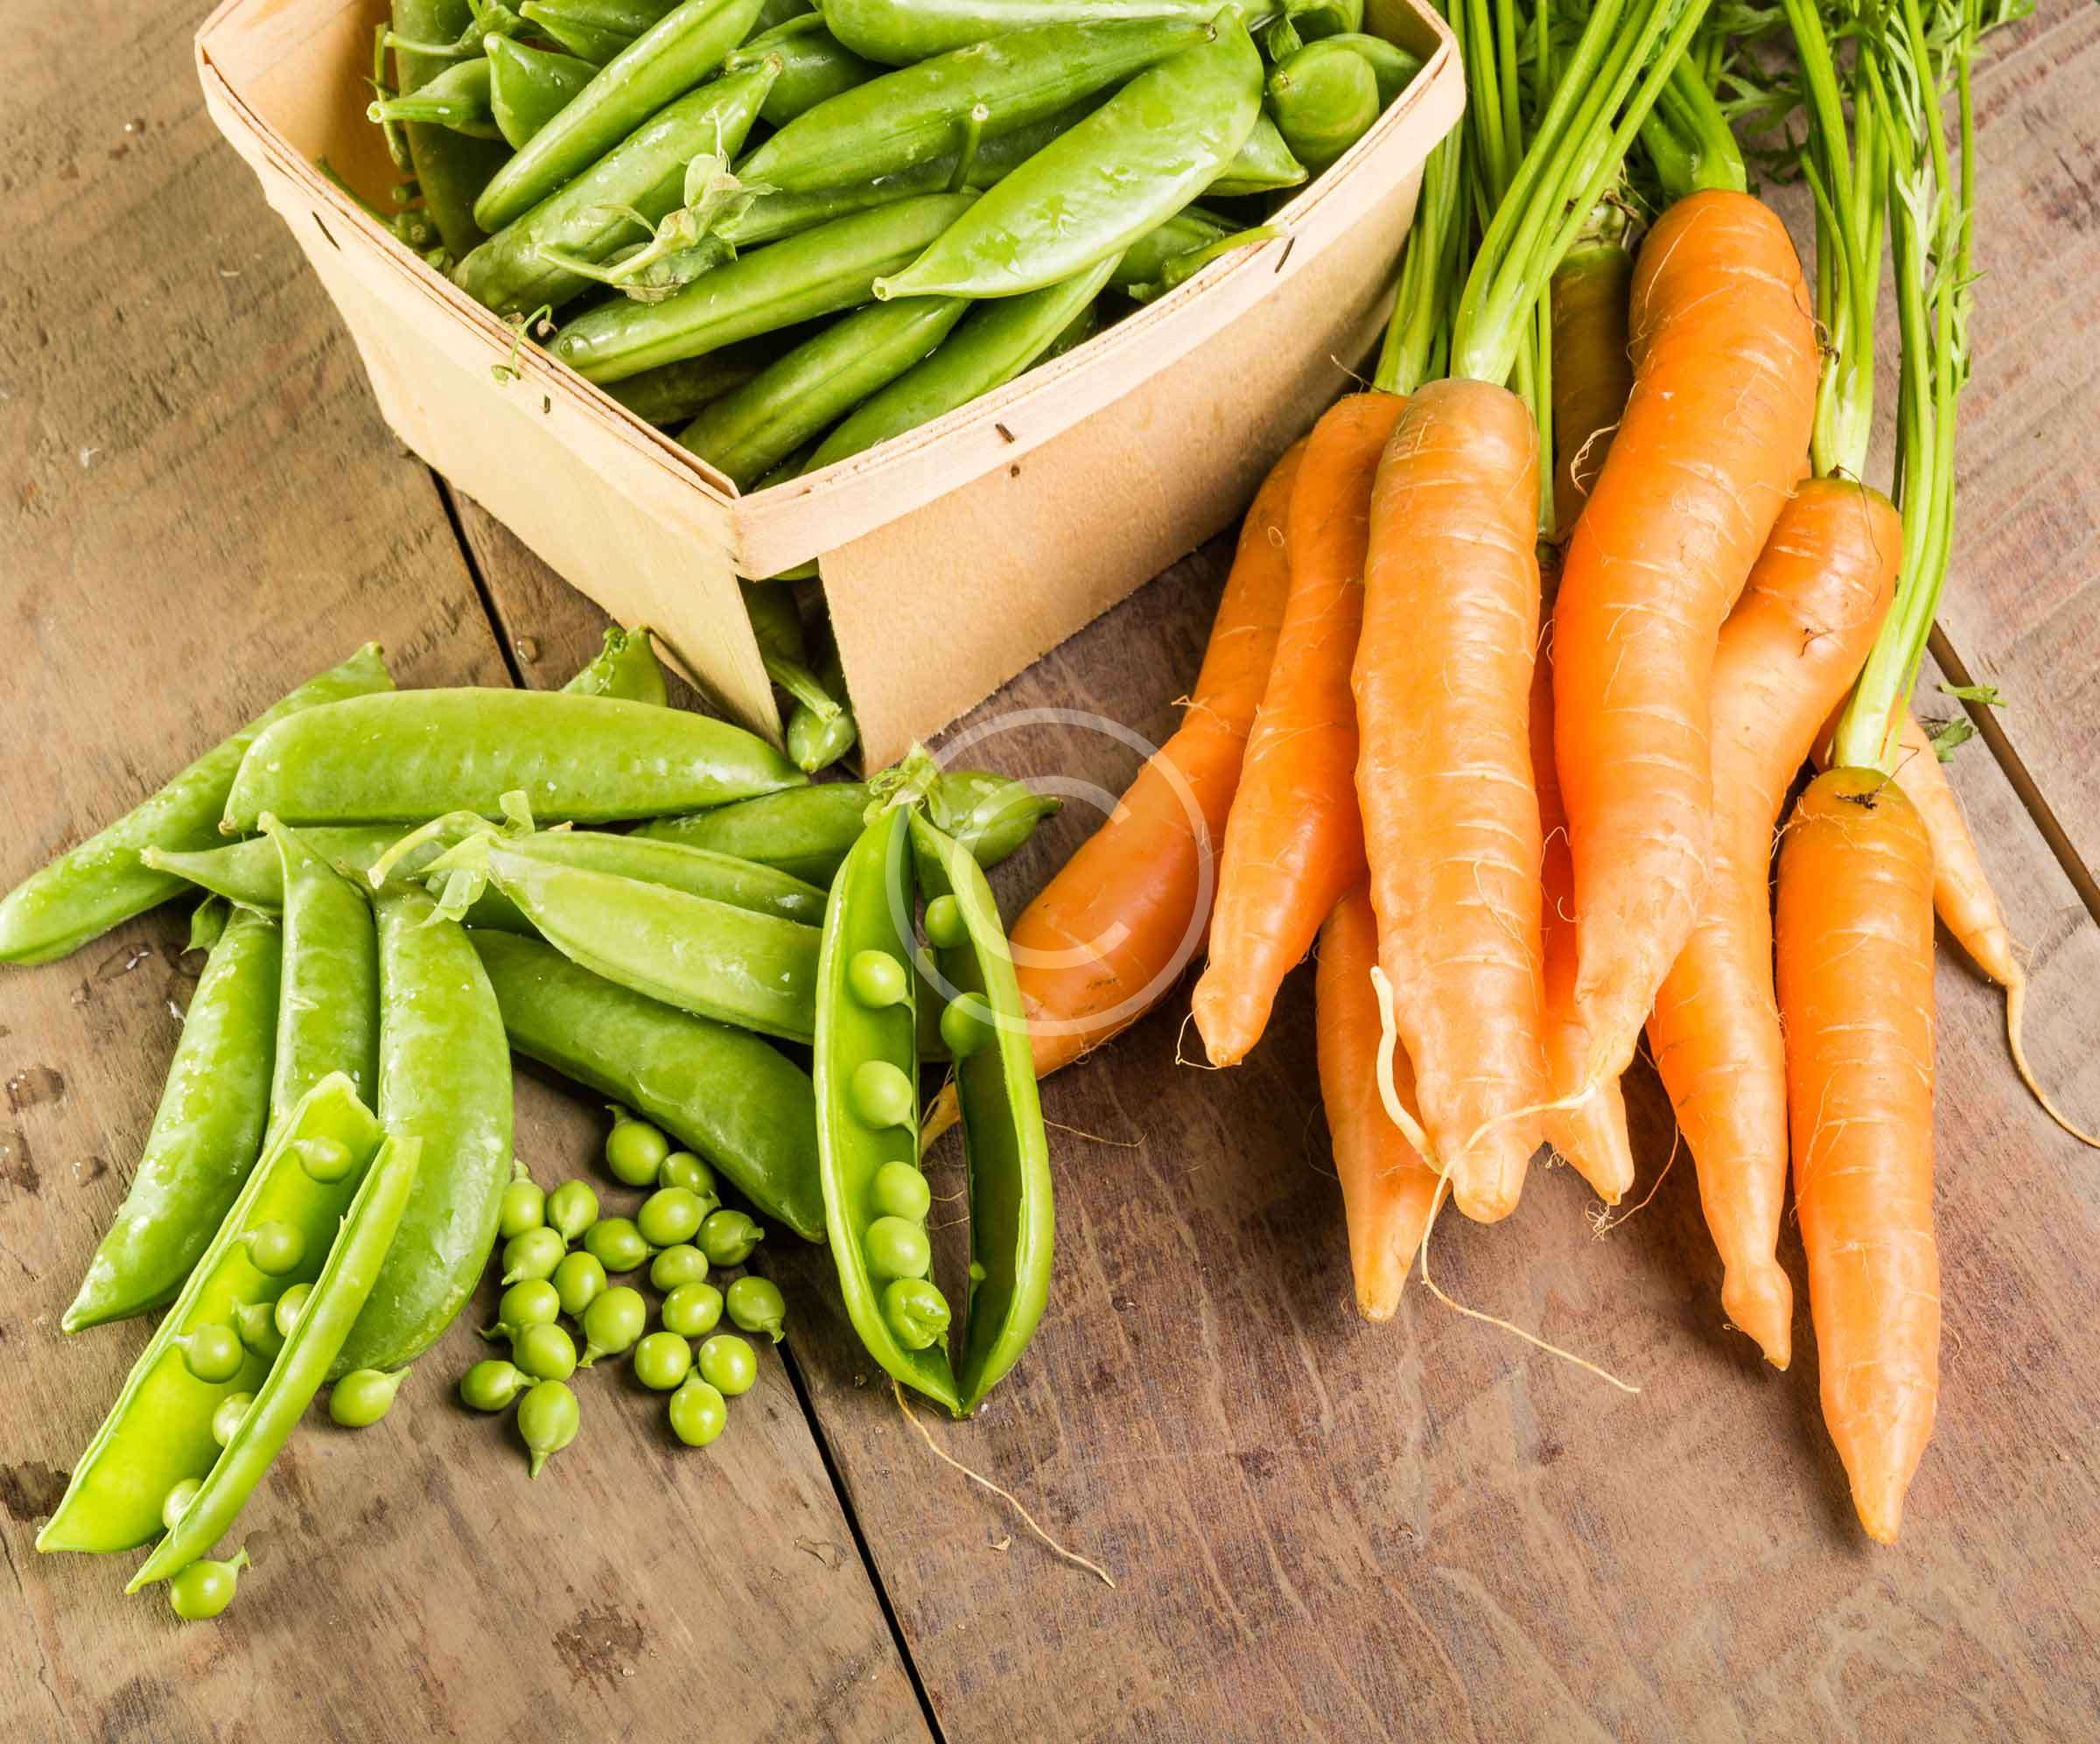 Top 5 the Most Healthy Vegetables